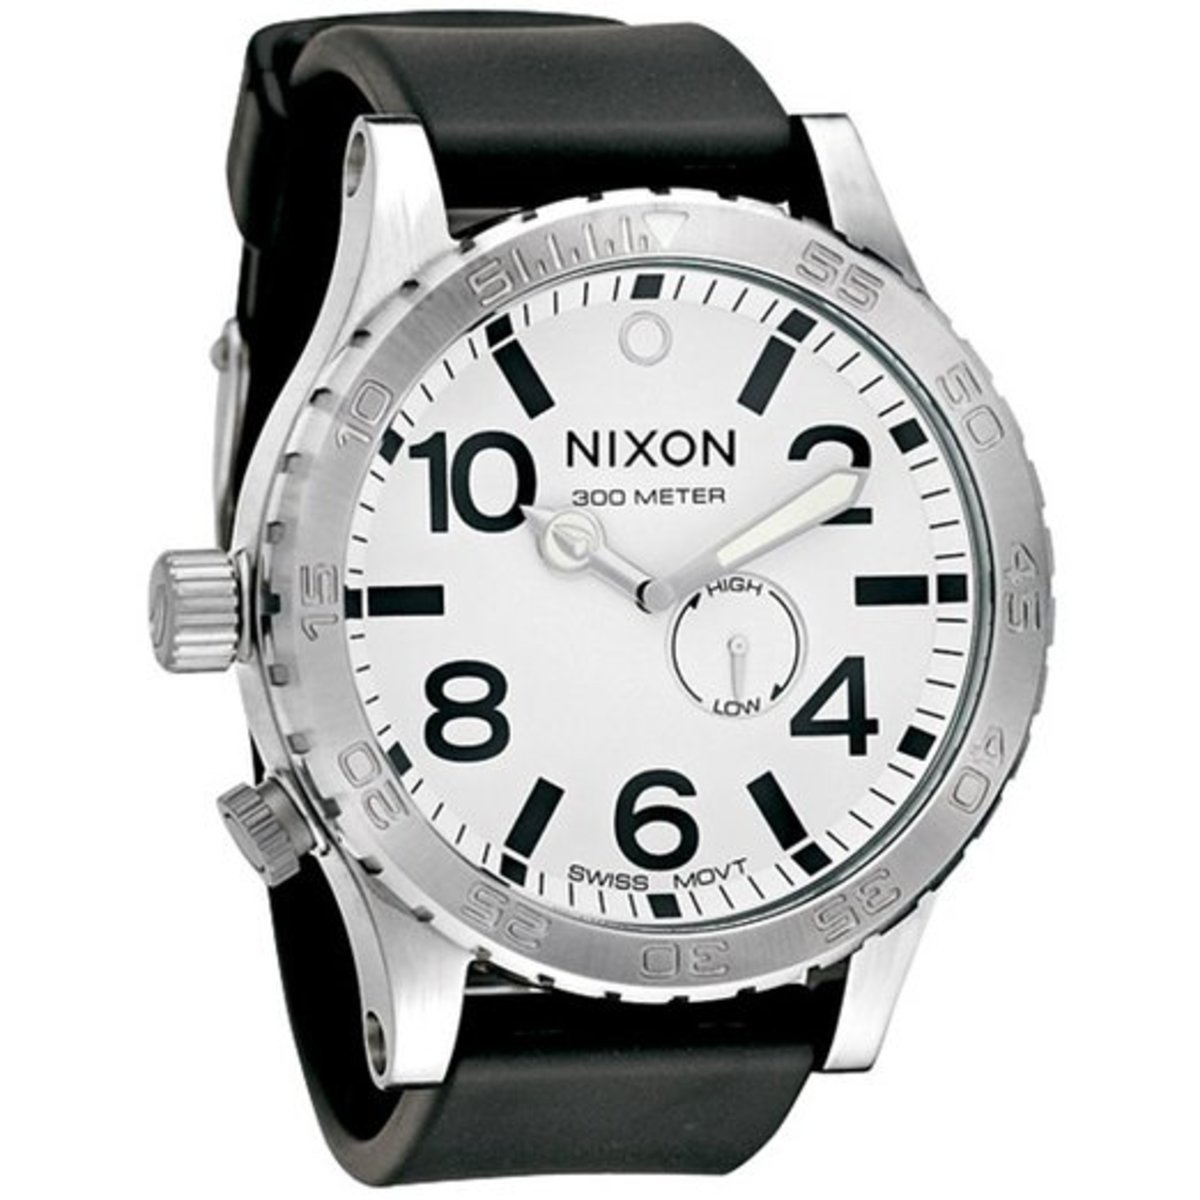 A fine quality watch from Nixon.